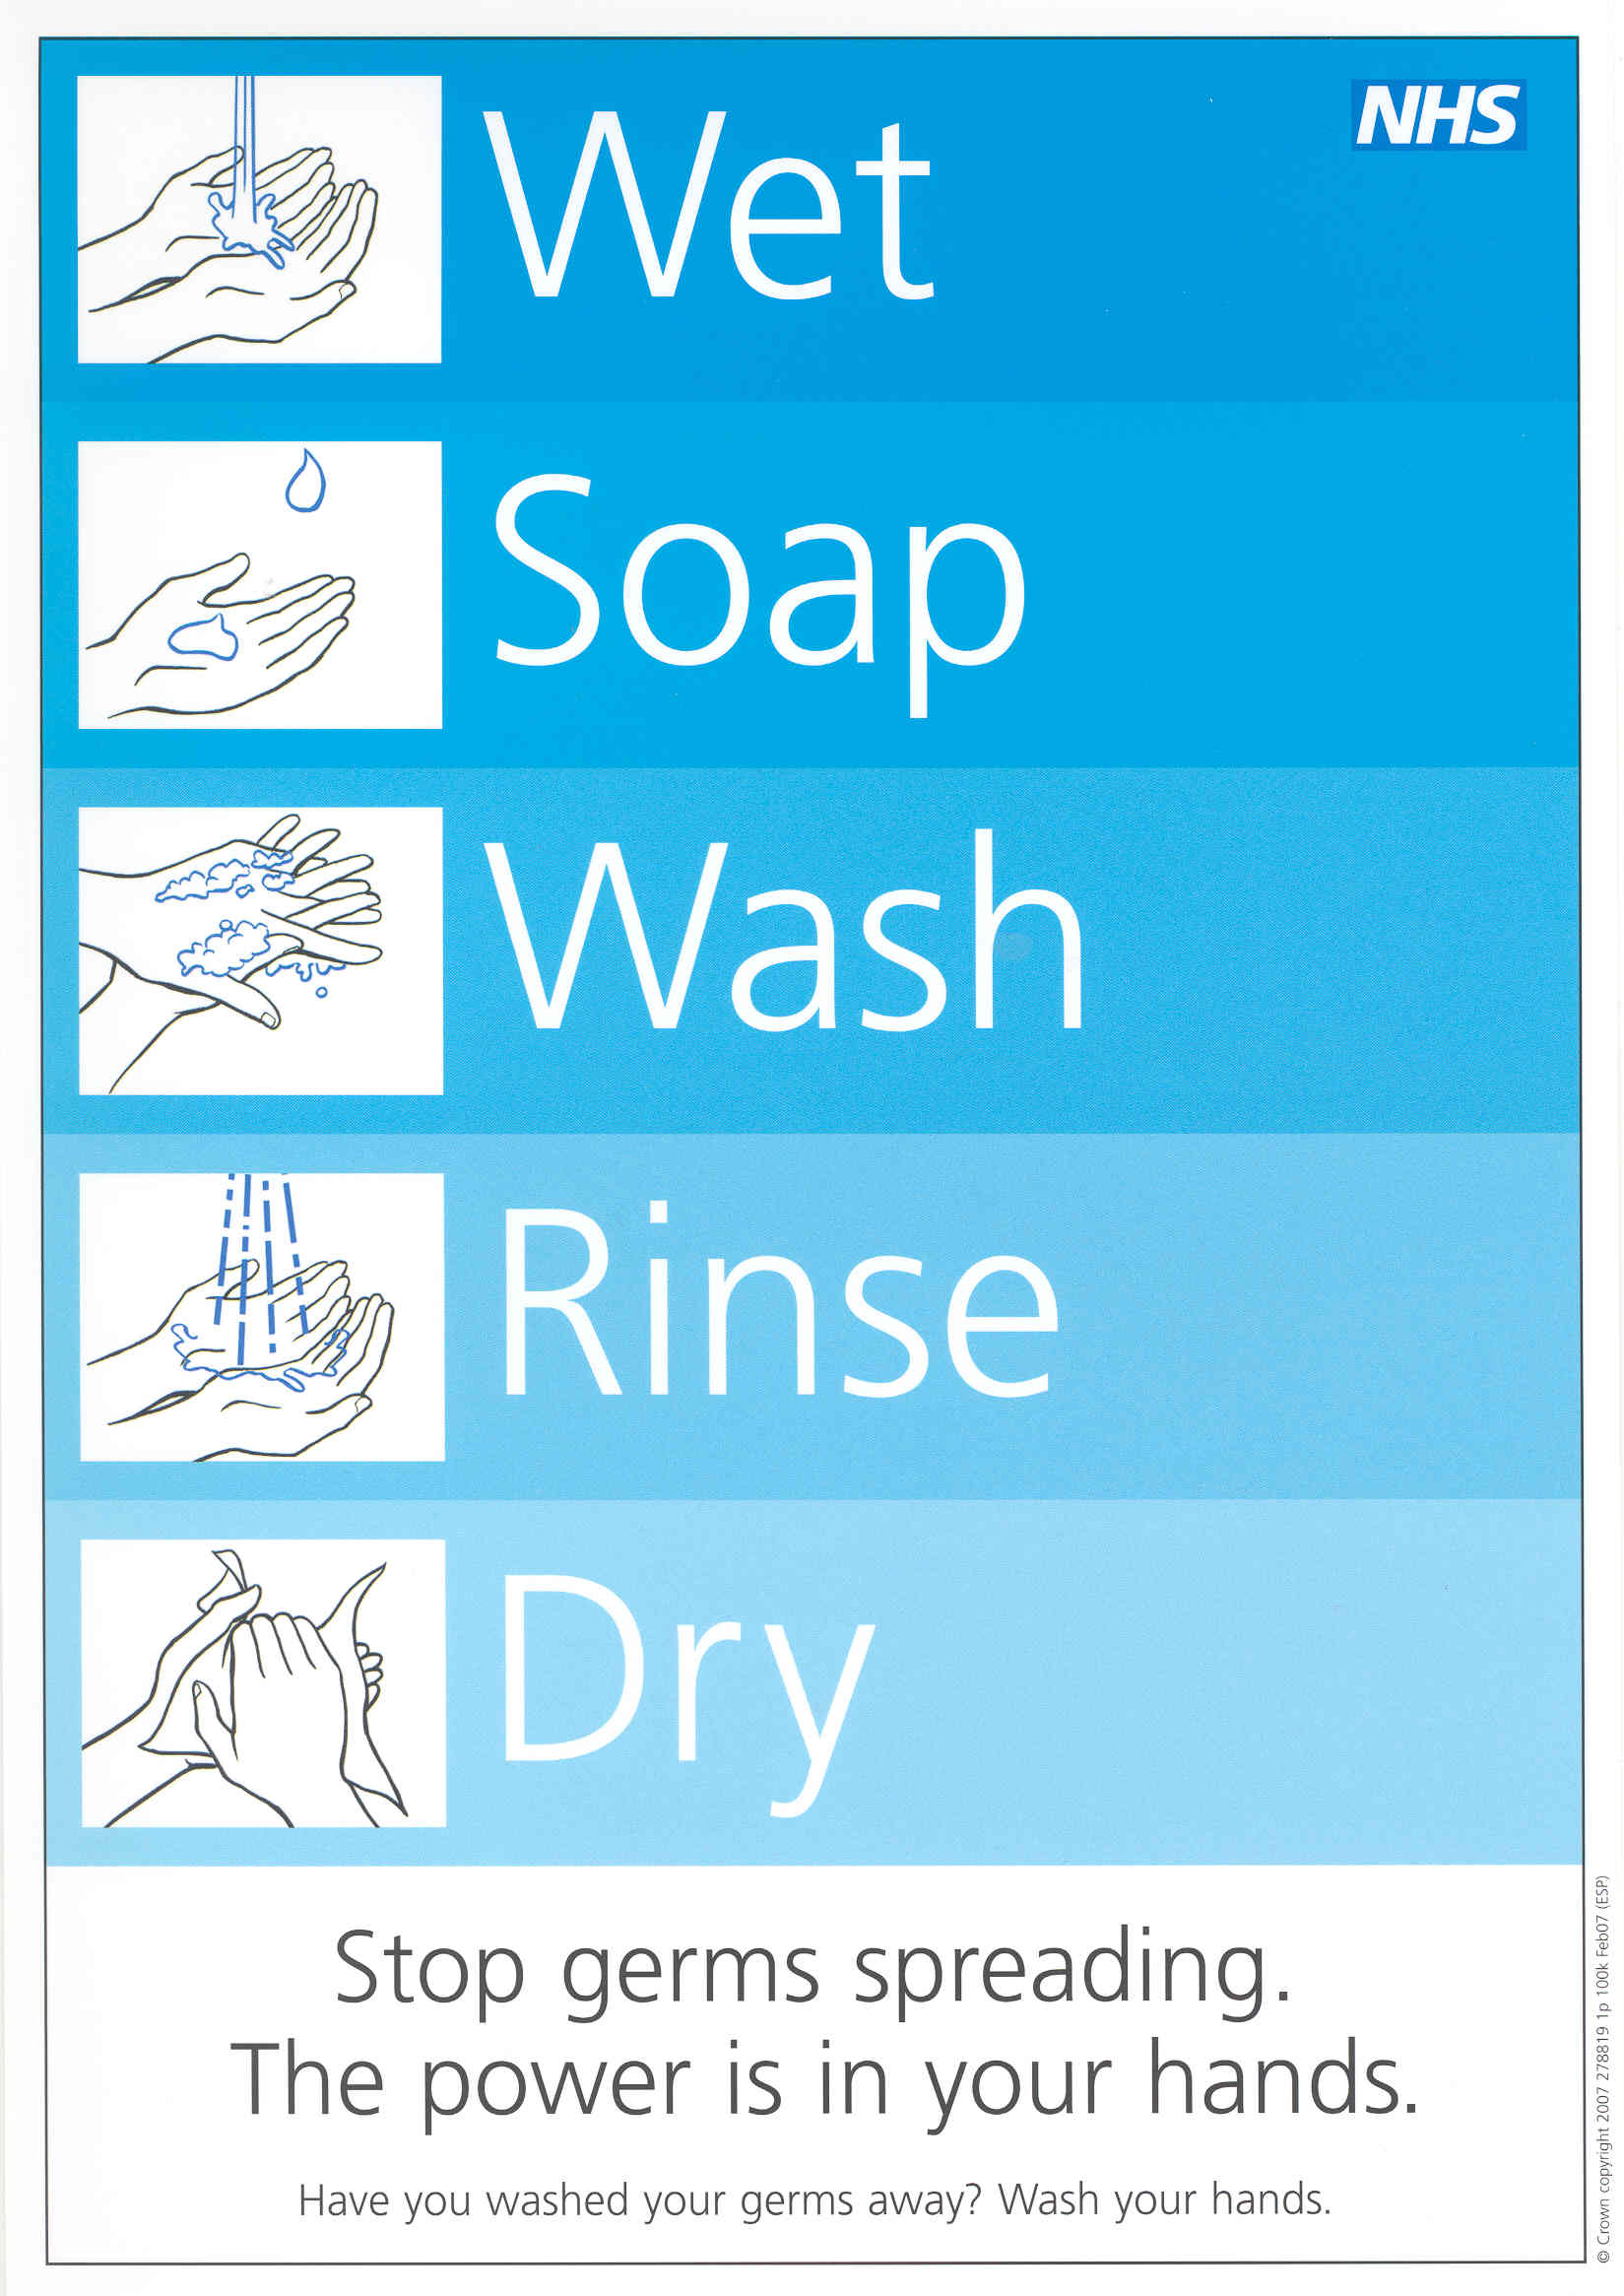 nhs england south east » infection control and winter readiness packs